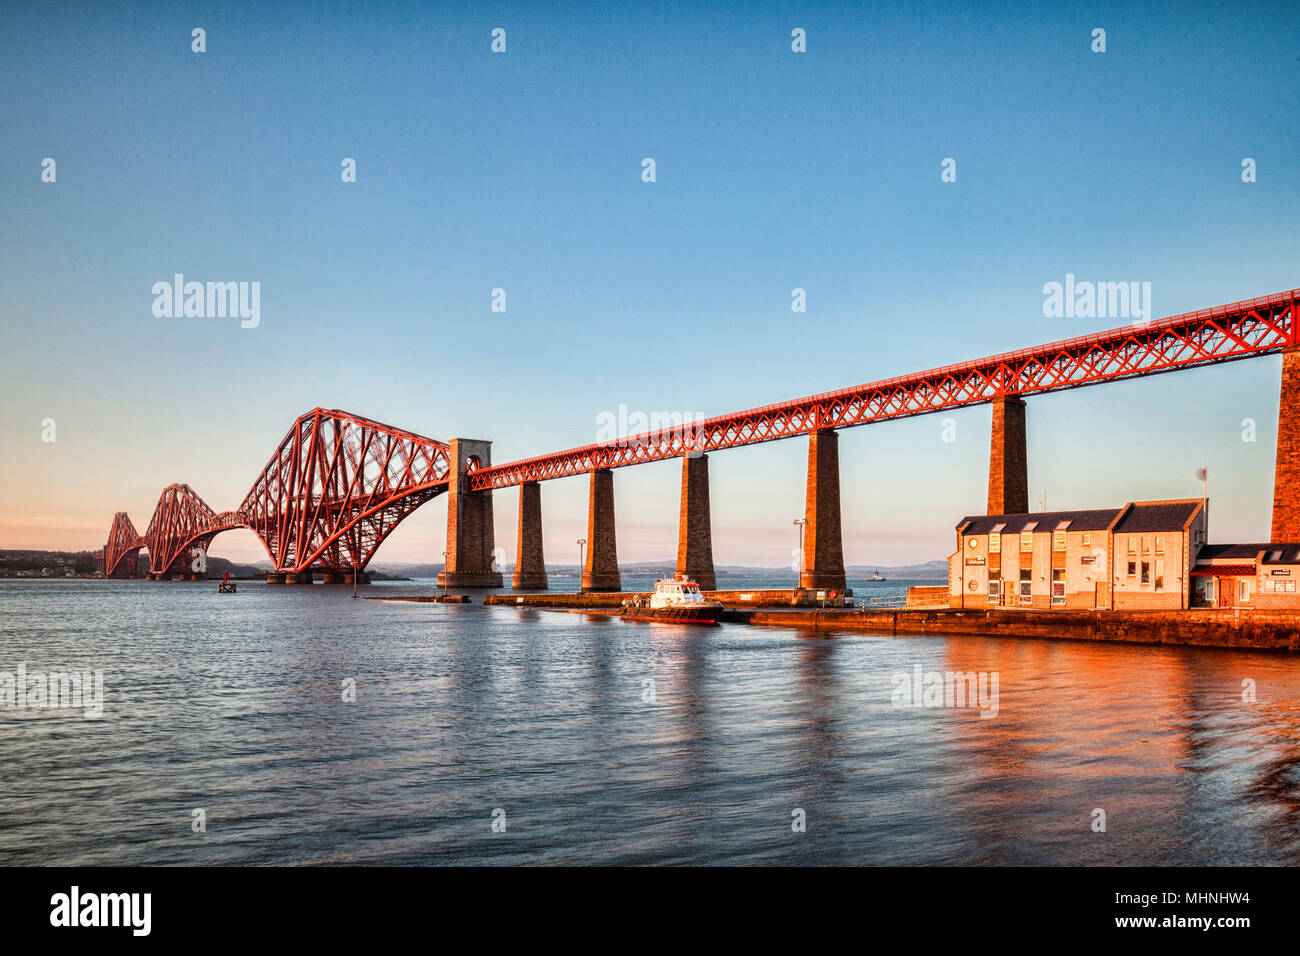 10 April 2016: Edinburgh, Scotland - Forth Rail bridge, Queensferry, Edinburgh, East Lothian, Scotland, UK, one of the most famous bridges in the worl - Stock Image